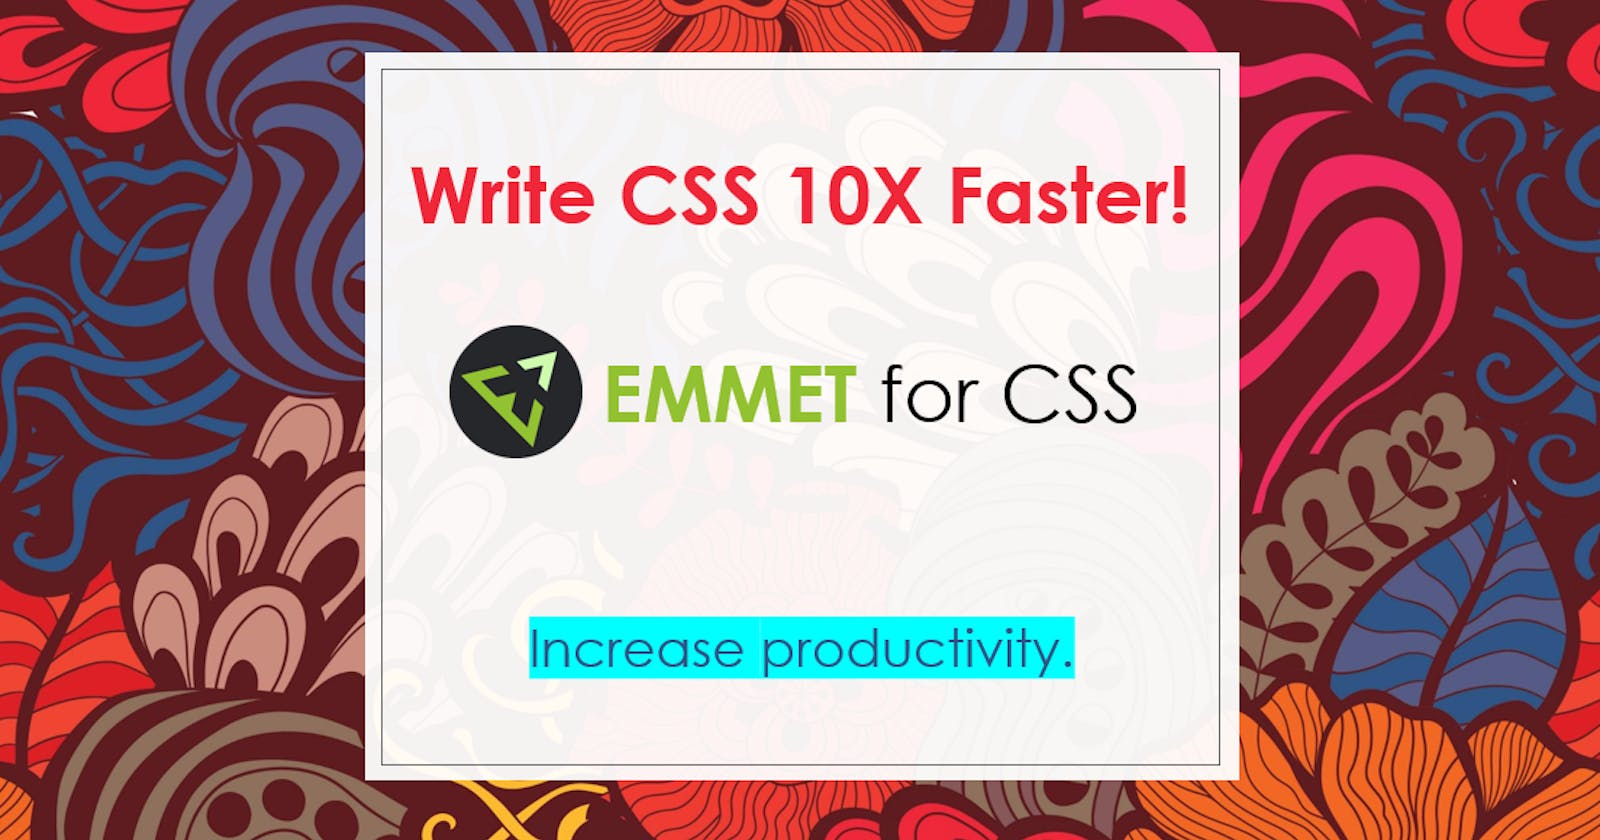 Write CSS 10X faster! Emmet for CSS